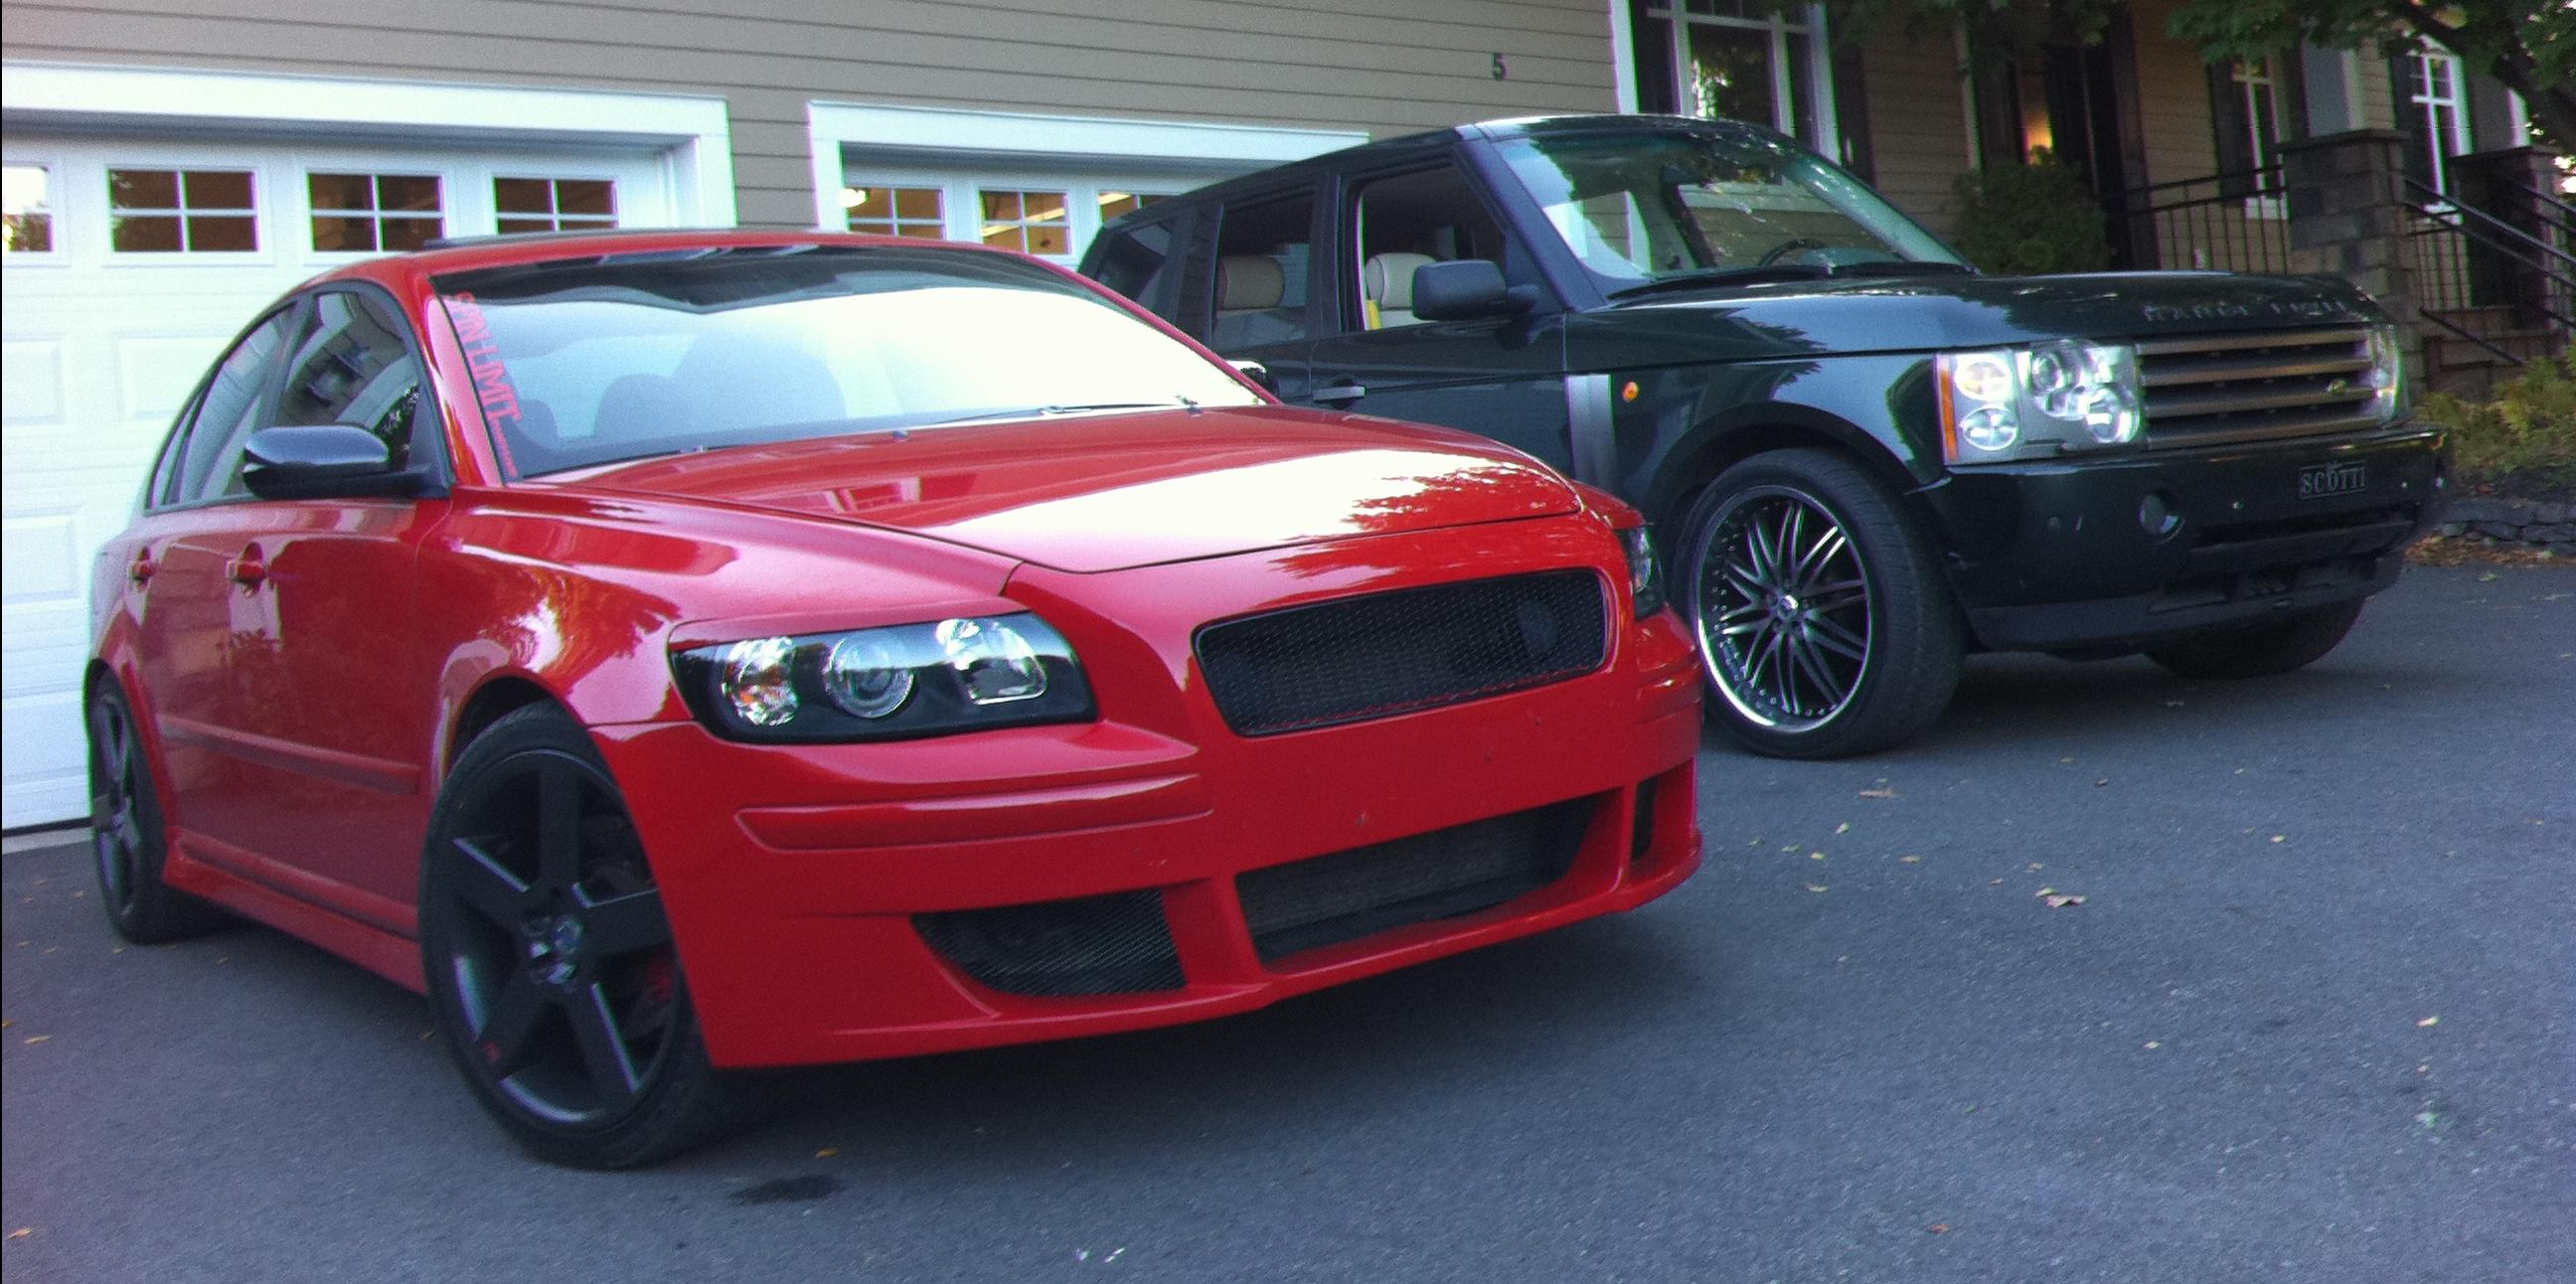 2005 volvo s40 view all 2005 volvo s40 at cardomain. Black Bedroom Furniture Sets. Home Design Ideas